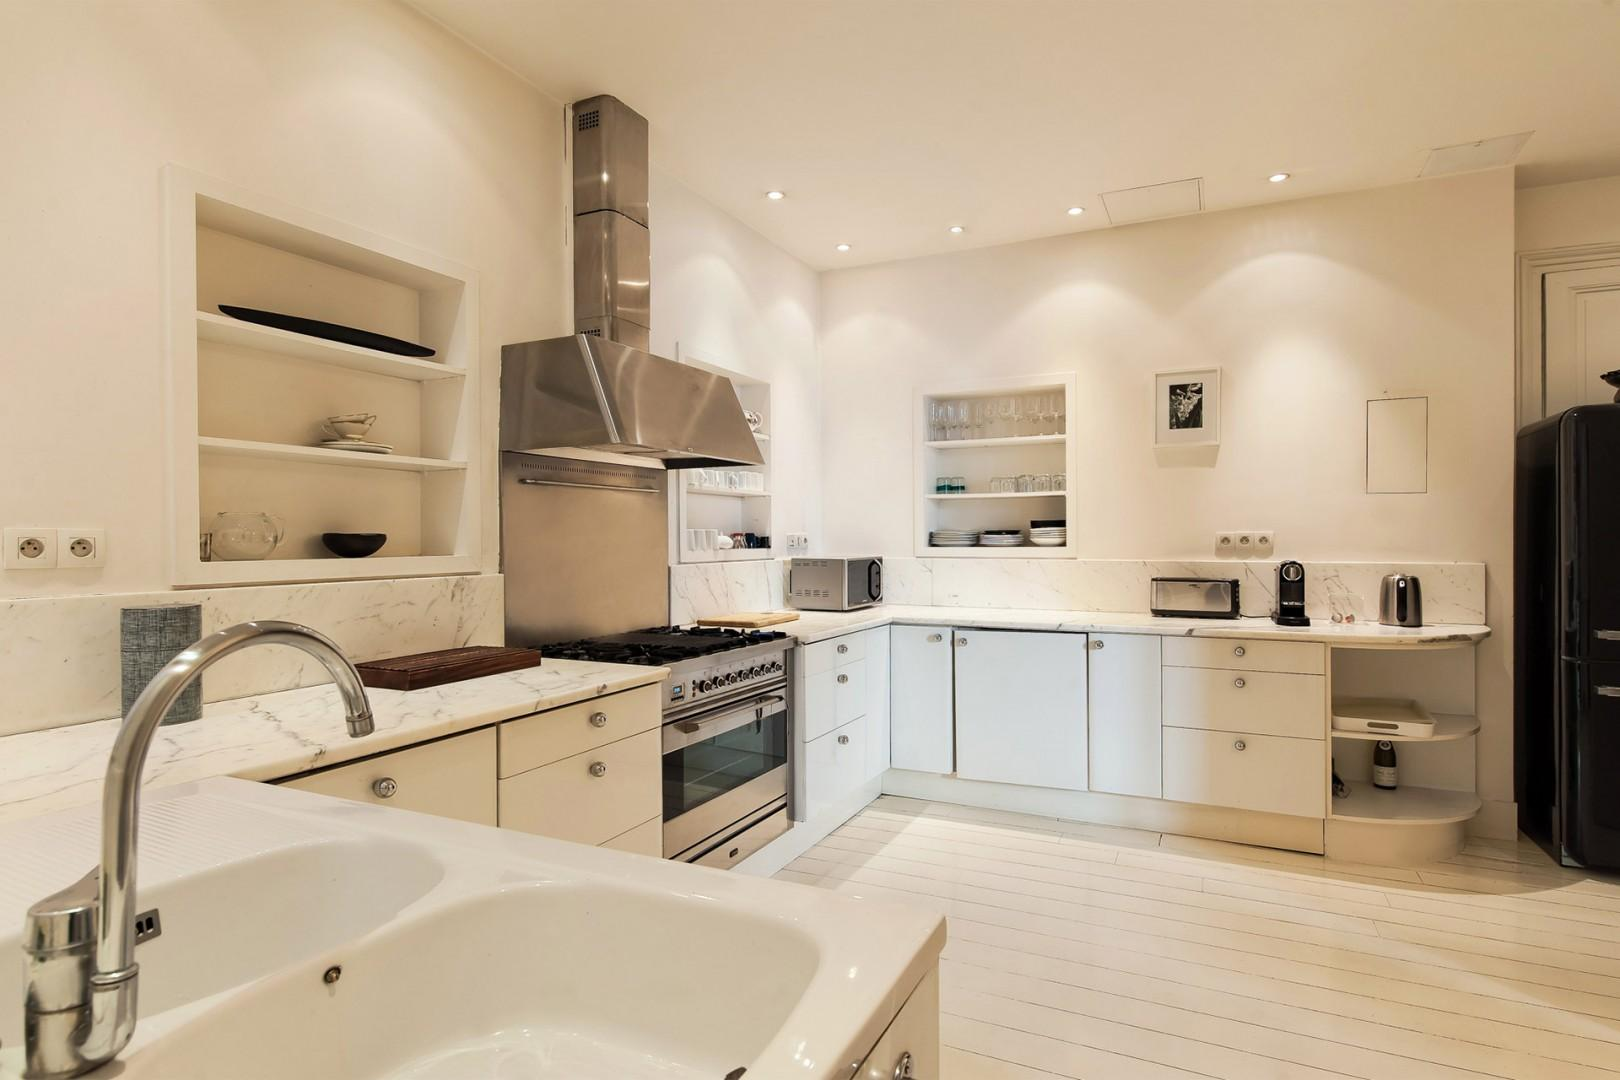 The large kitchen has modern appliances plus everything you need to cook at home.